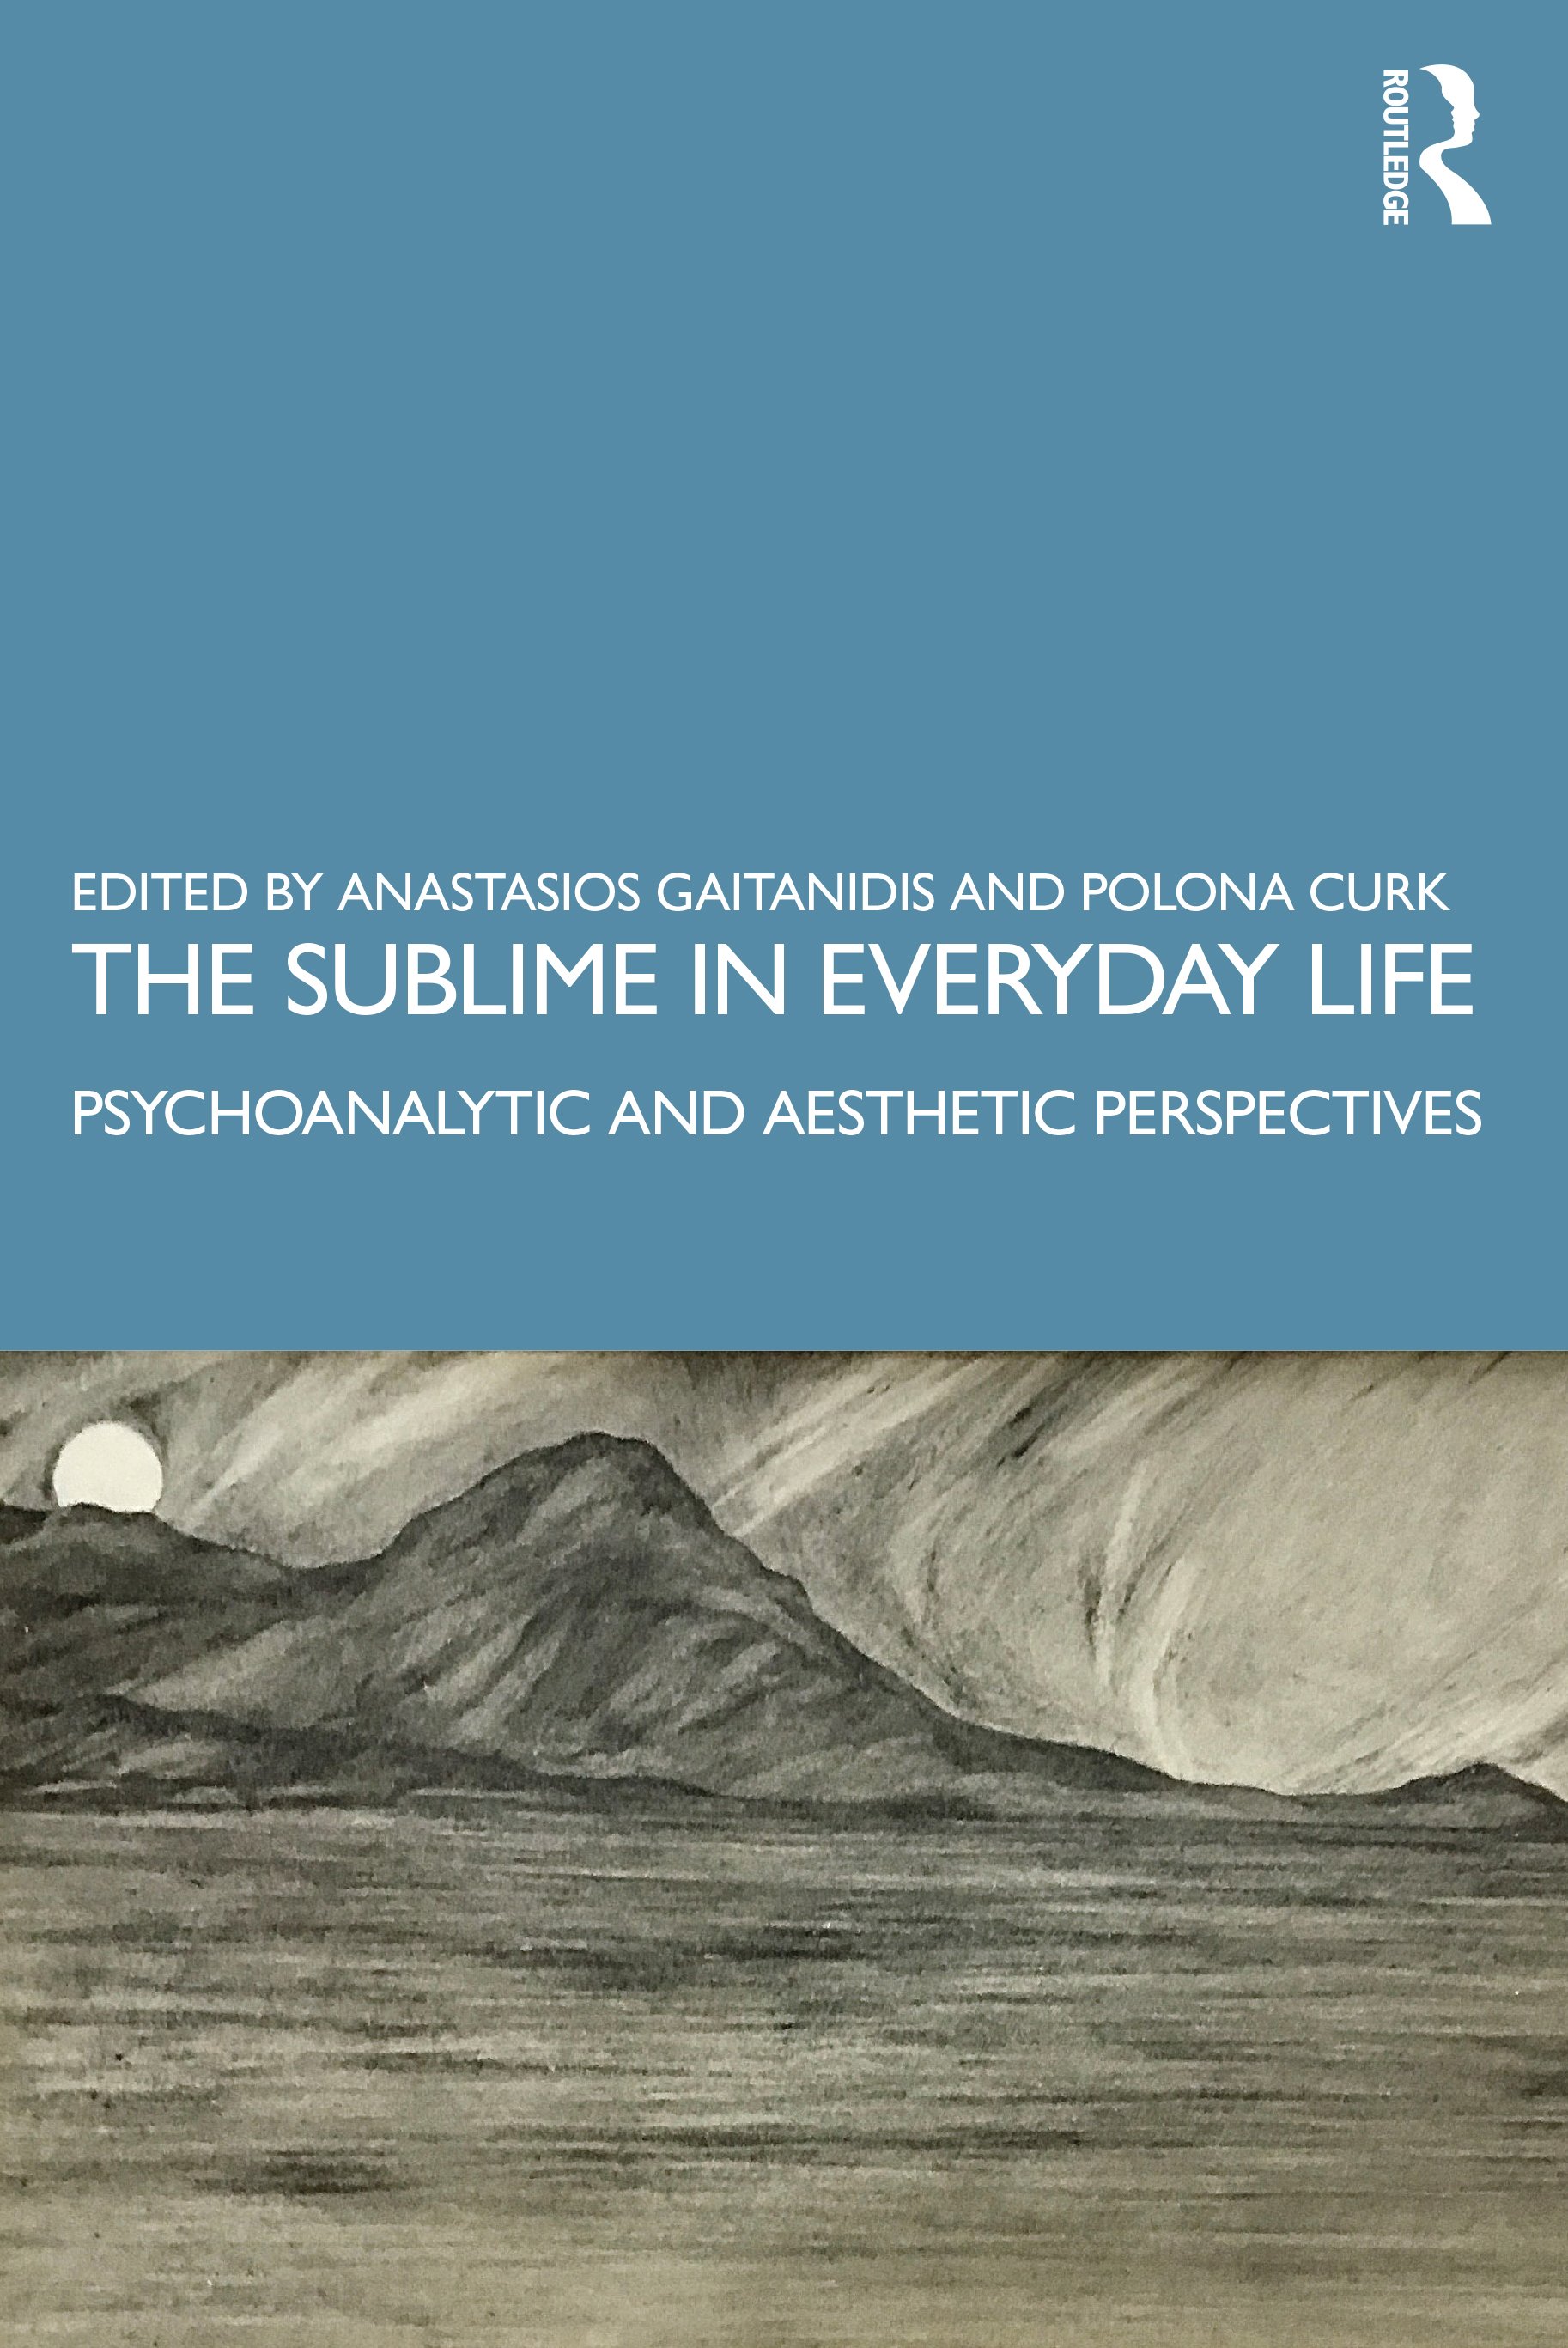 The Sublime in Everyday Life